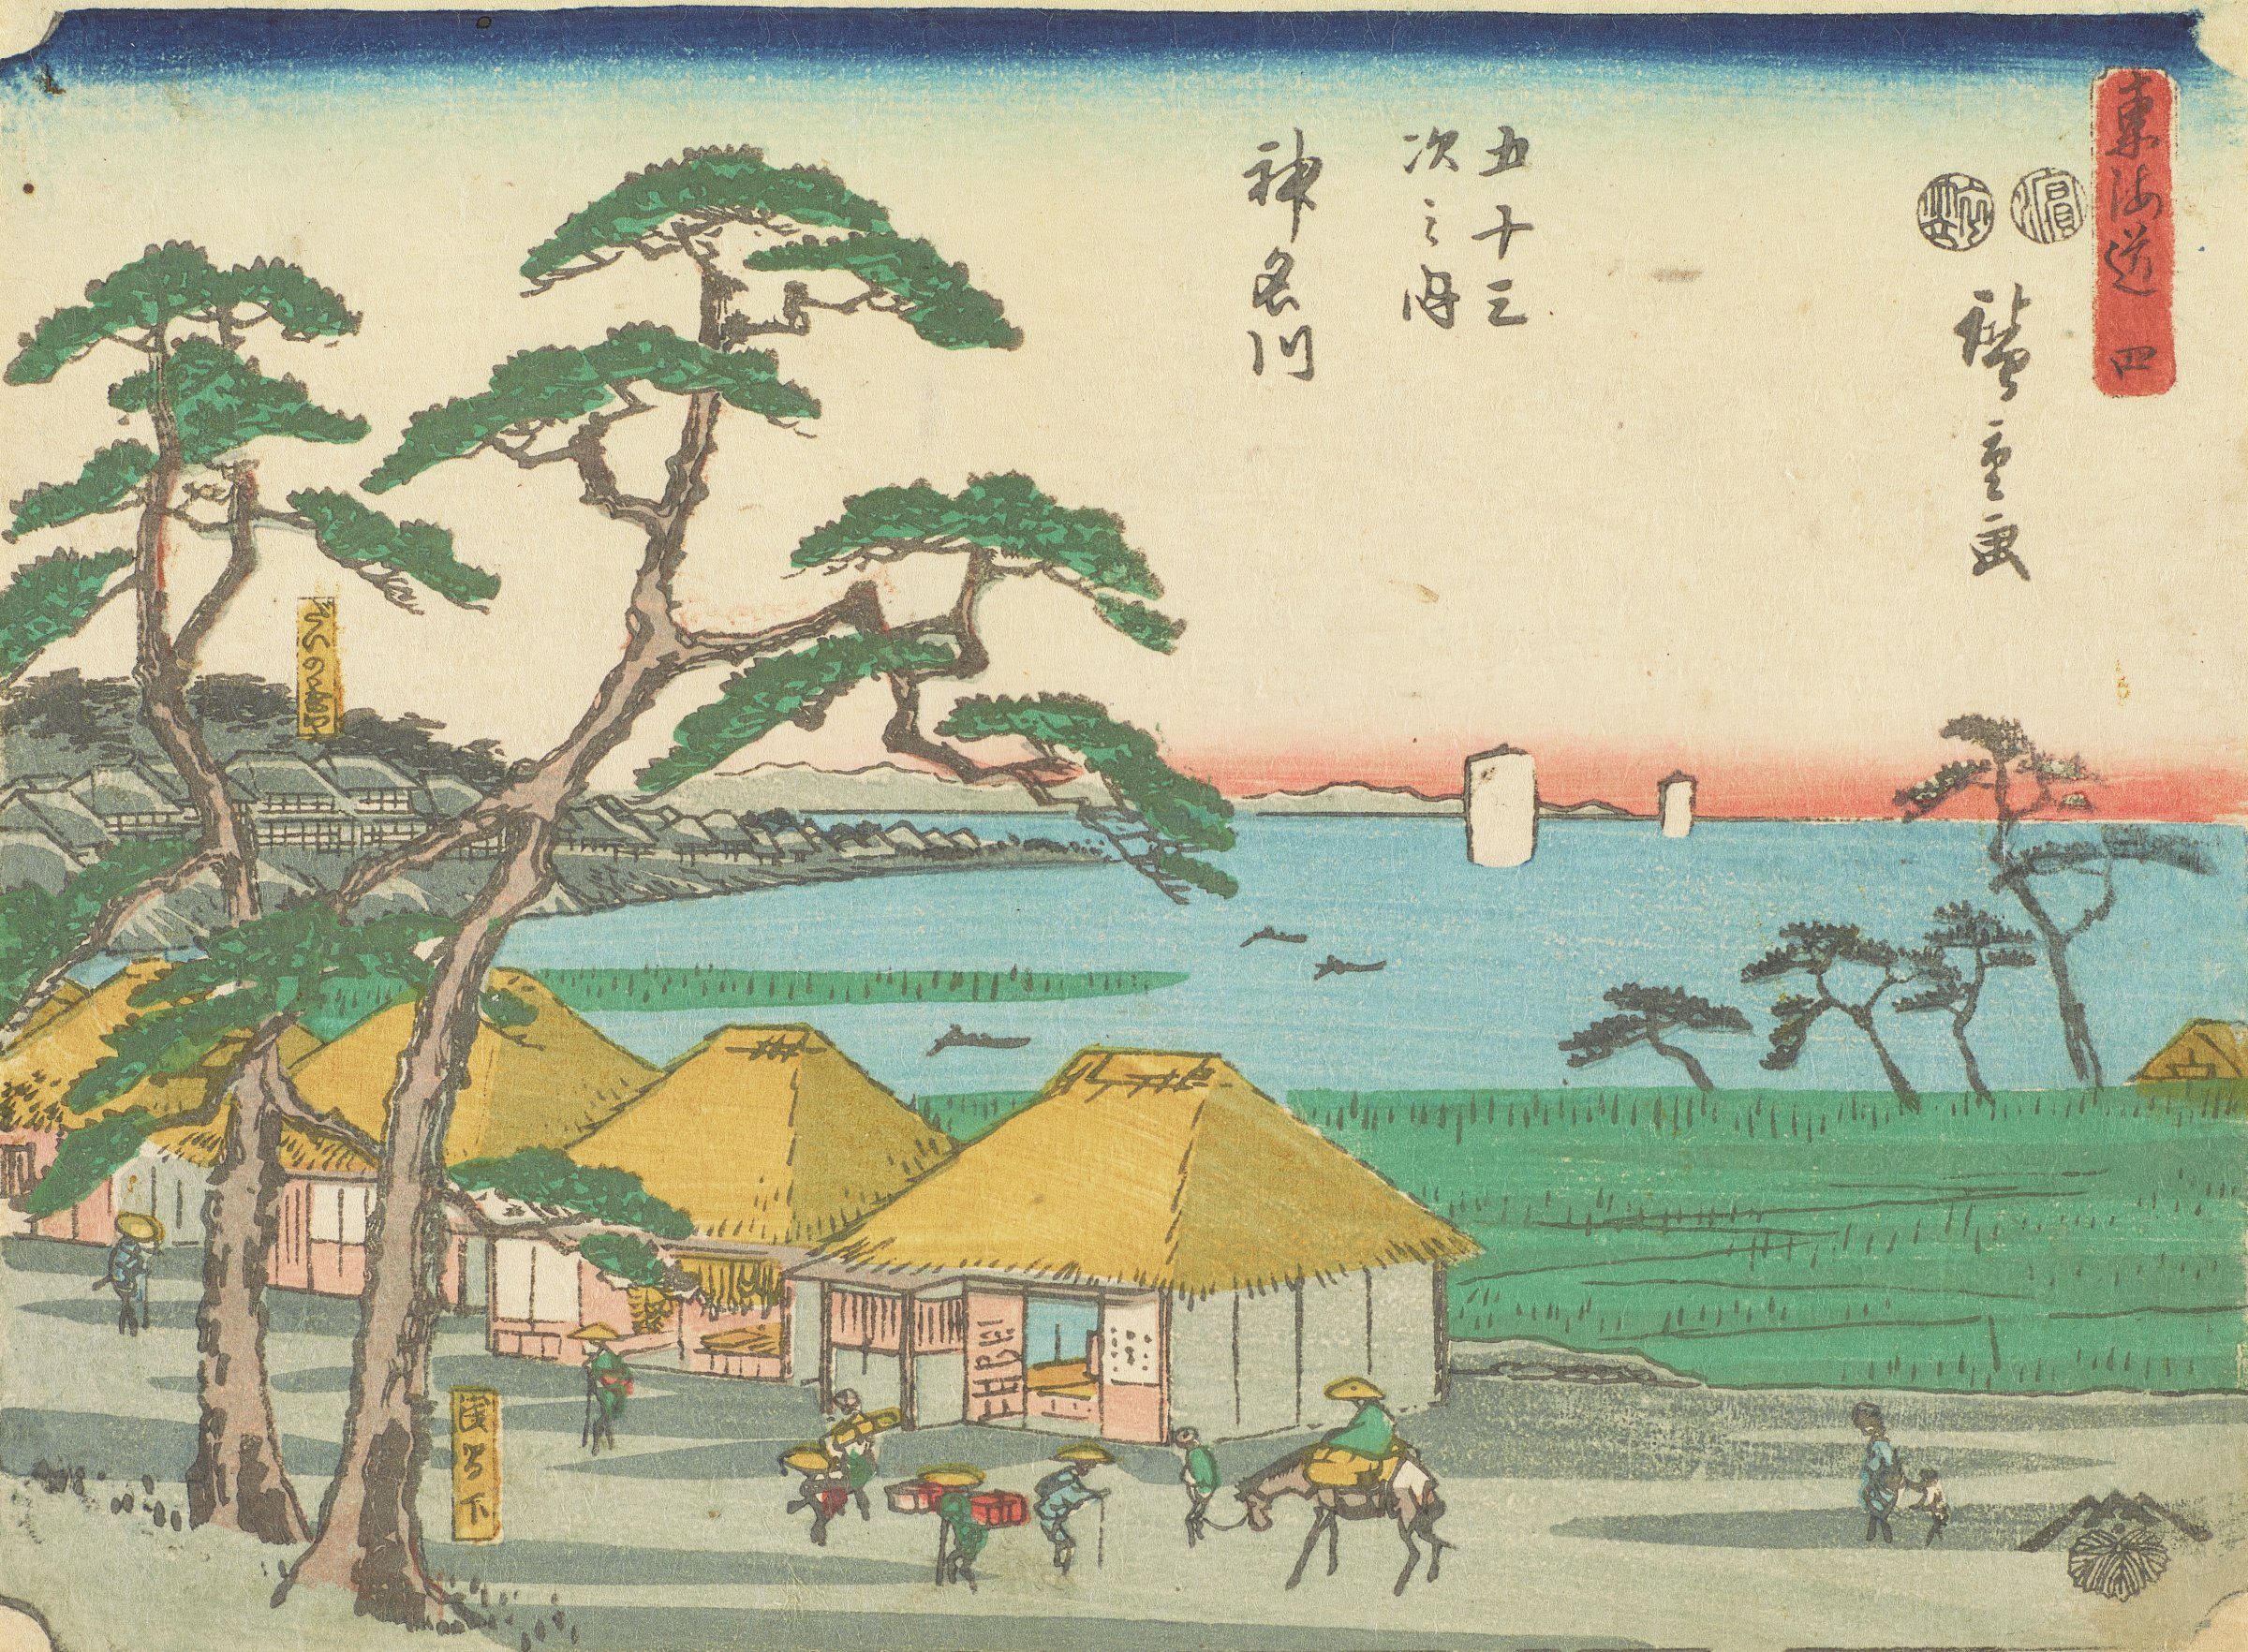 No. 4 Kanagawa, from the series Fifty-three Stations of Tōkaidō, Ando Hiroshige, ink and color on paper